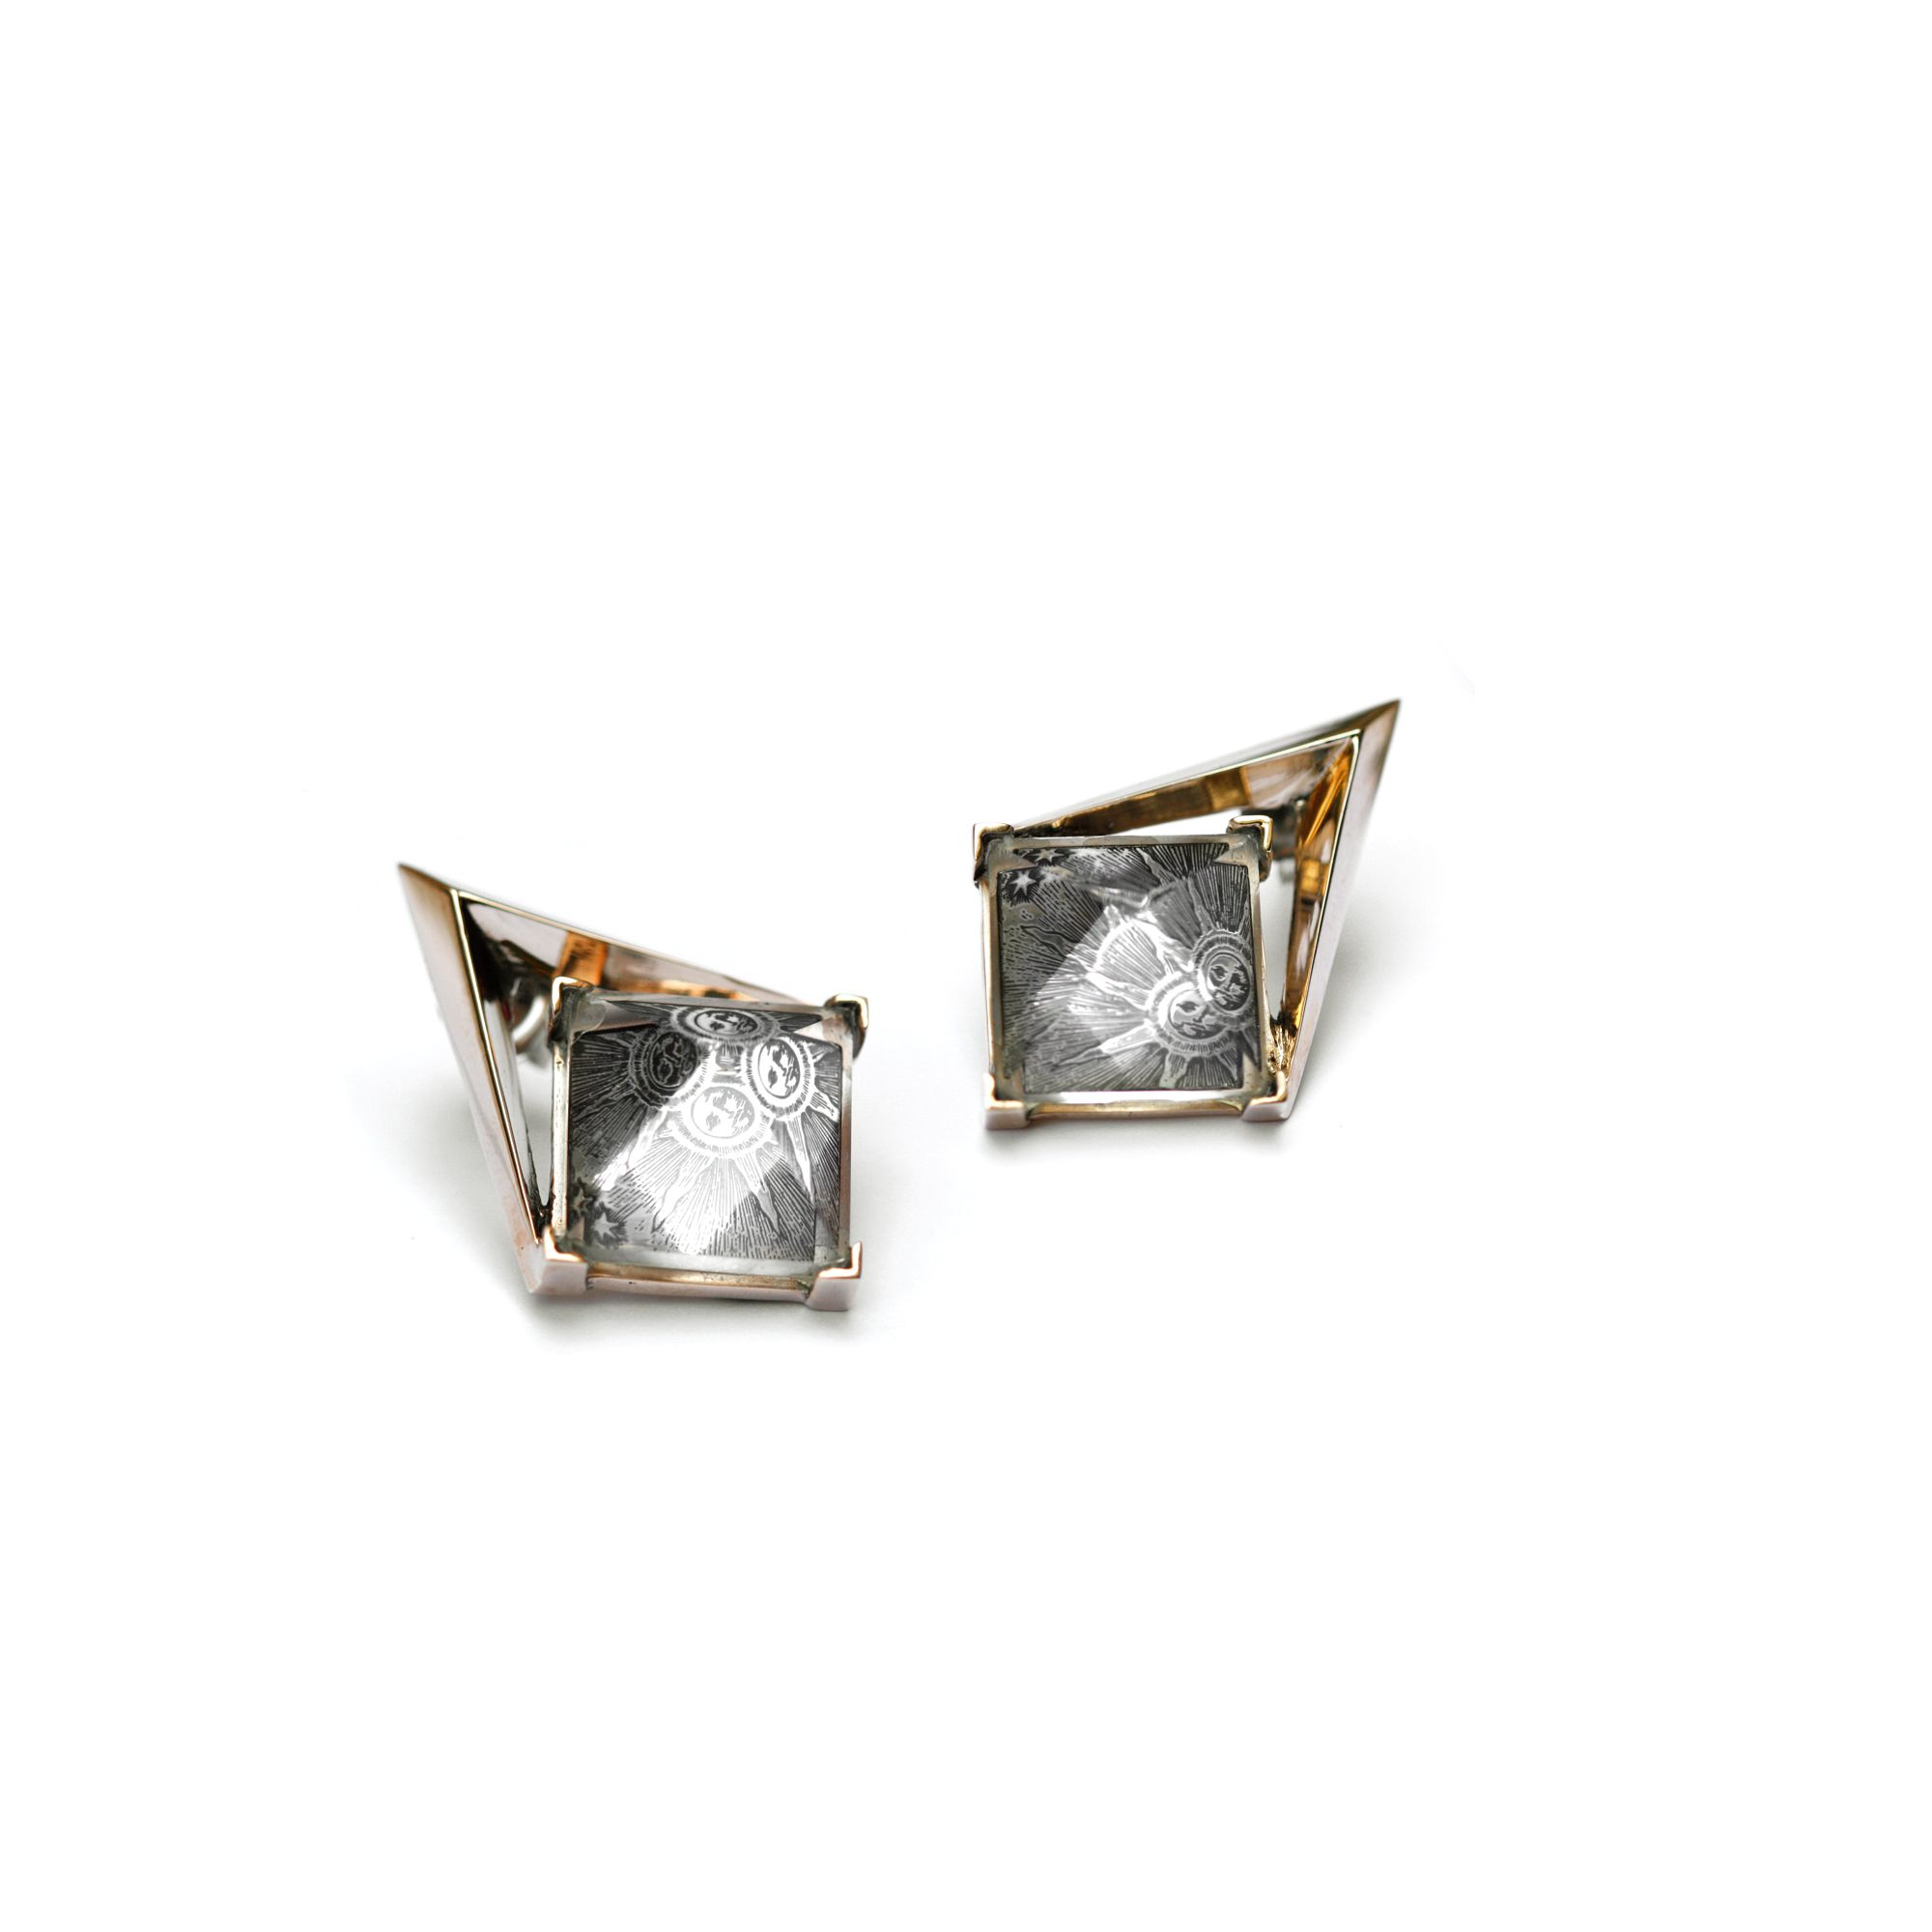 'Entropia' earrings with sun Bronze and silver earrings with pyramid